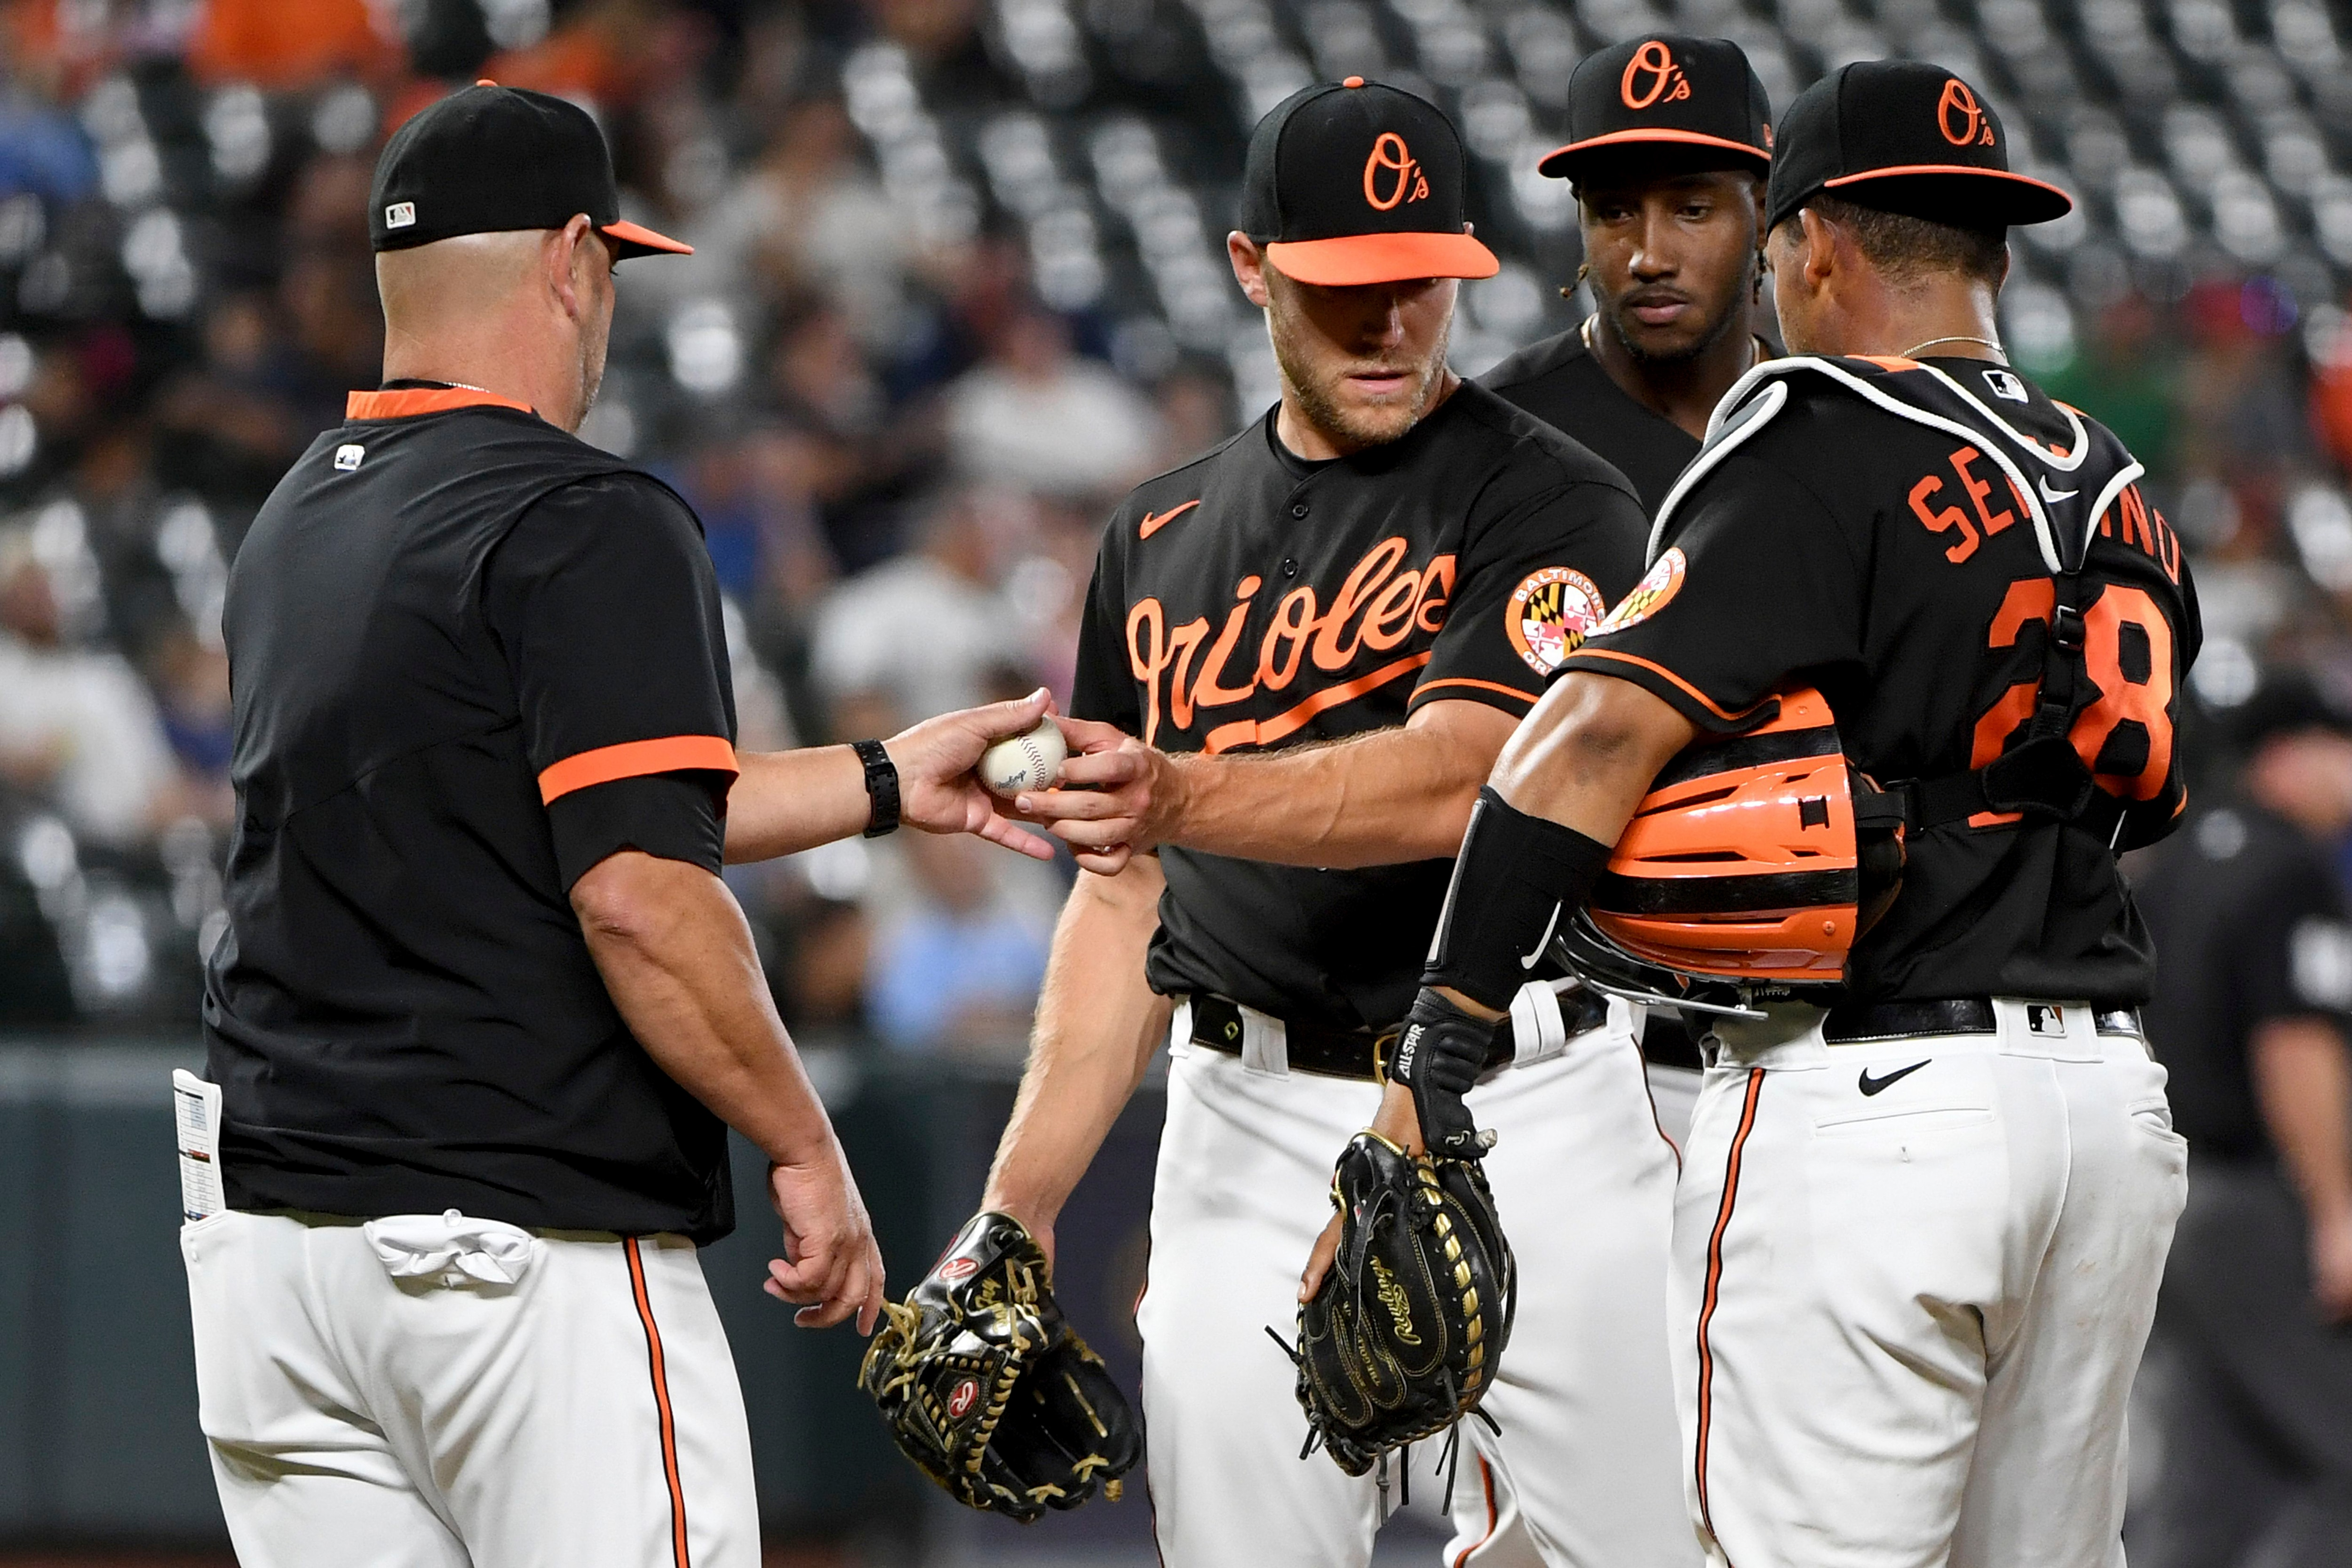 Rough finishes from Paul Fry, Tanner Scott create uncertainty in their status for Orioles' 2022 bullpen